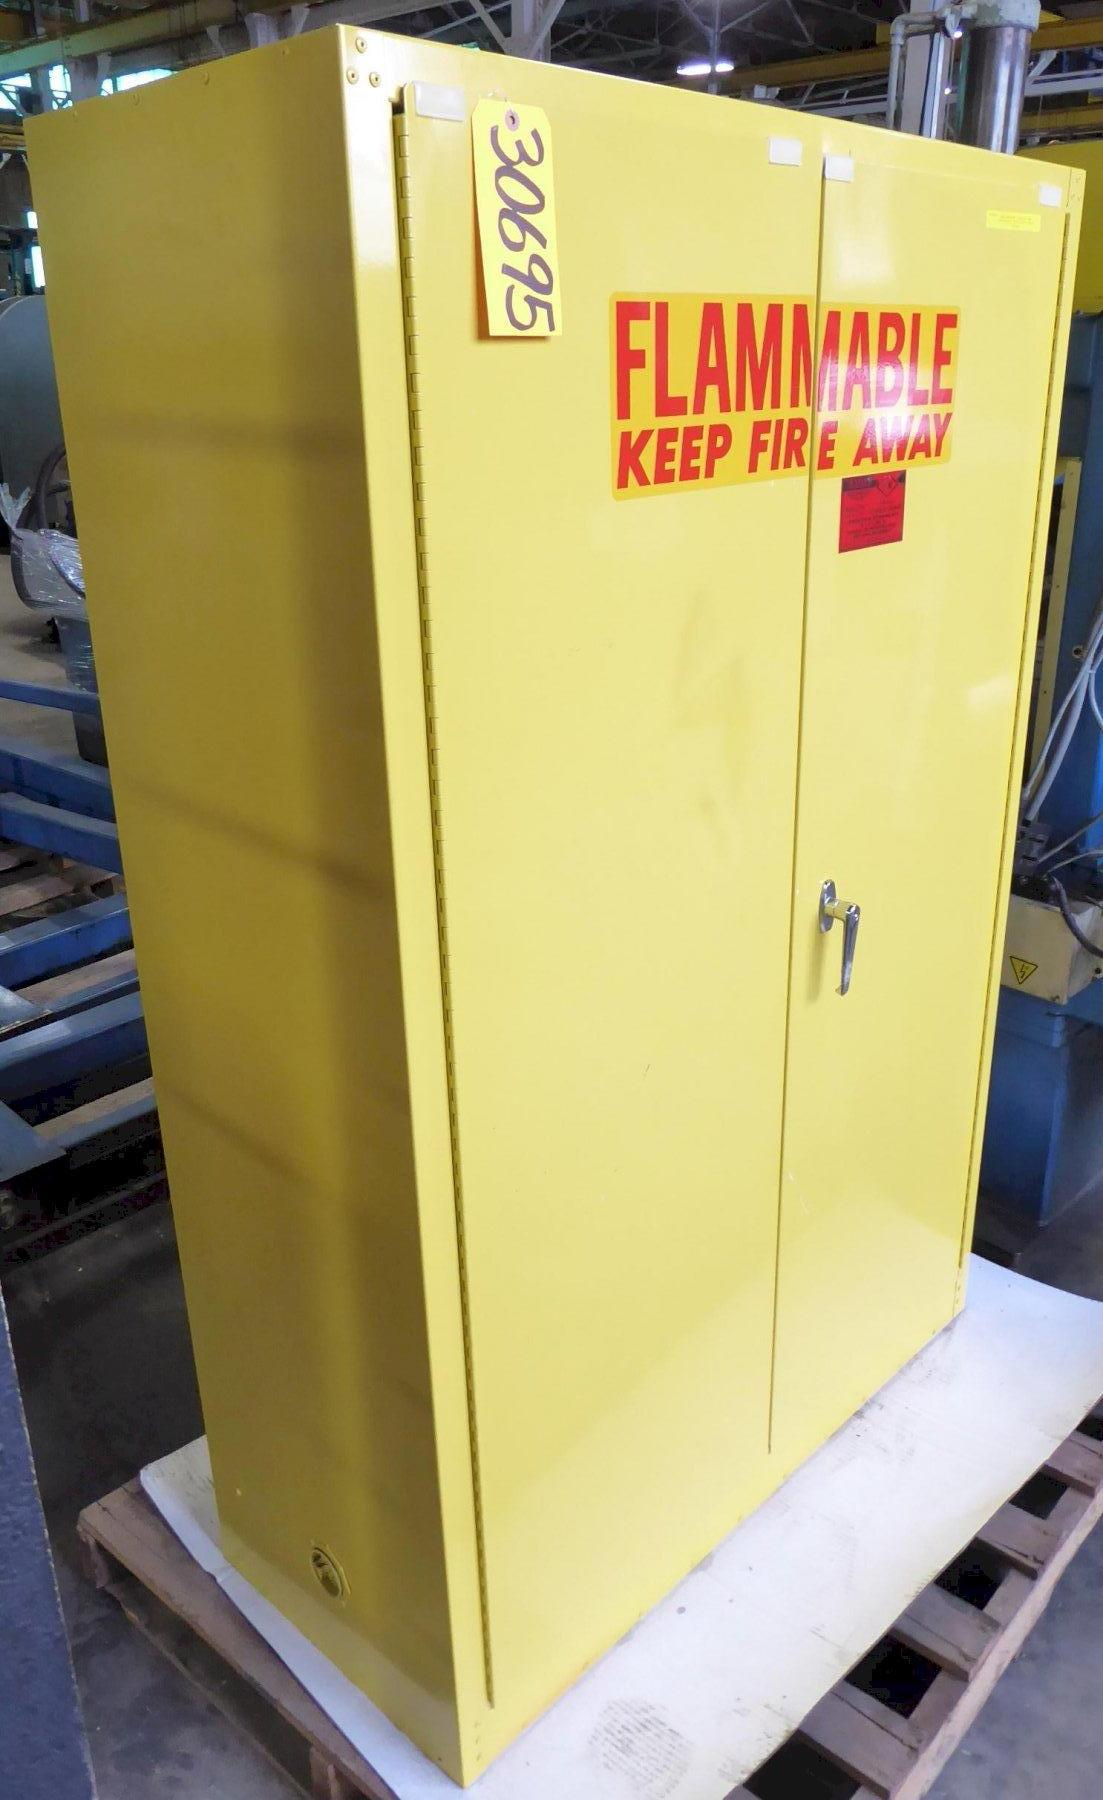 Eagle Flammable Materials Storage Cabinet Model 1947, 45 Gallon Capacity, Two Door, Two Shelves, Excellent